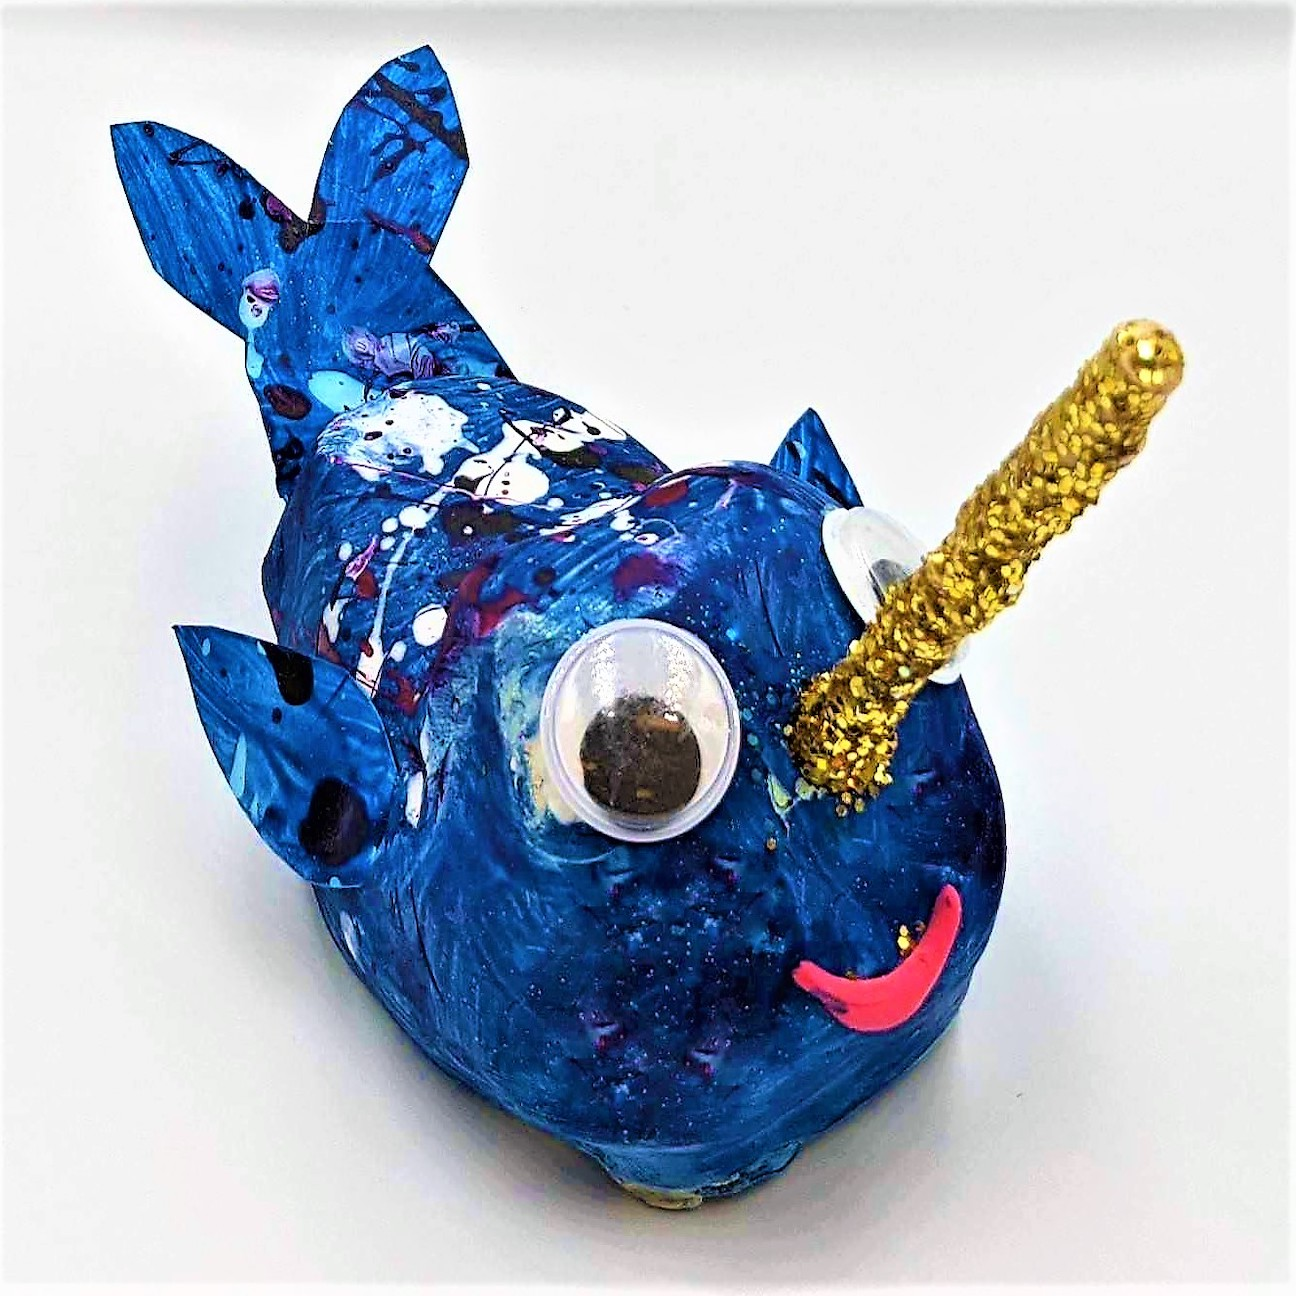 Kidcreate Studio, Nifty Narwhal Art Project